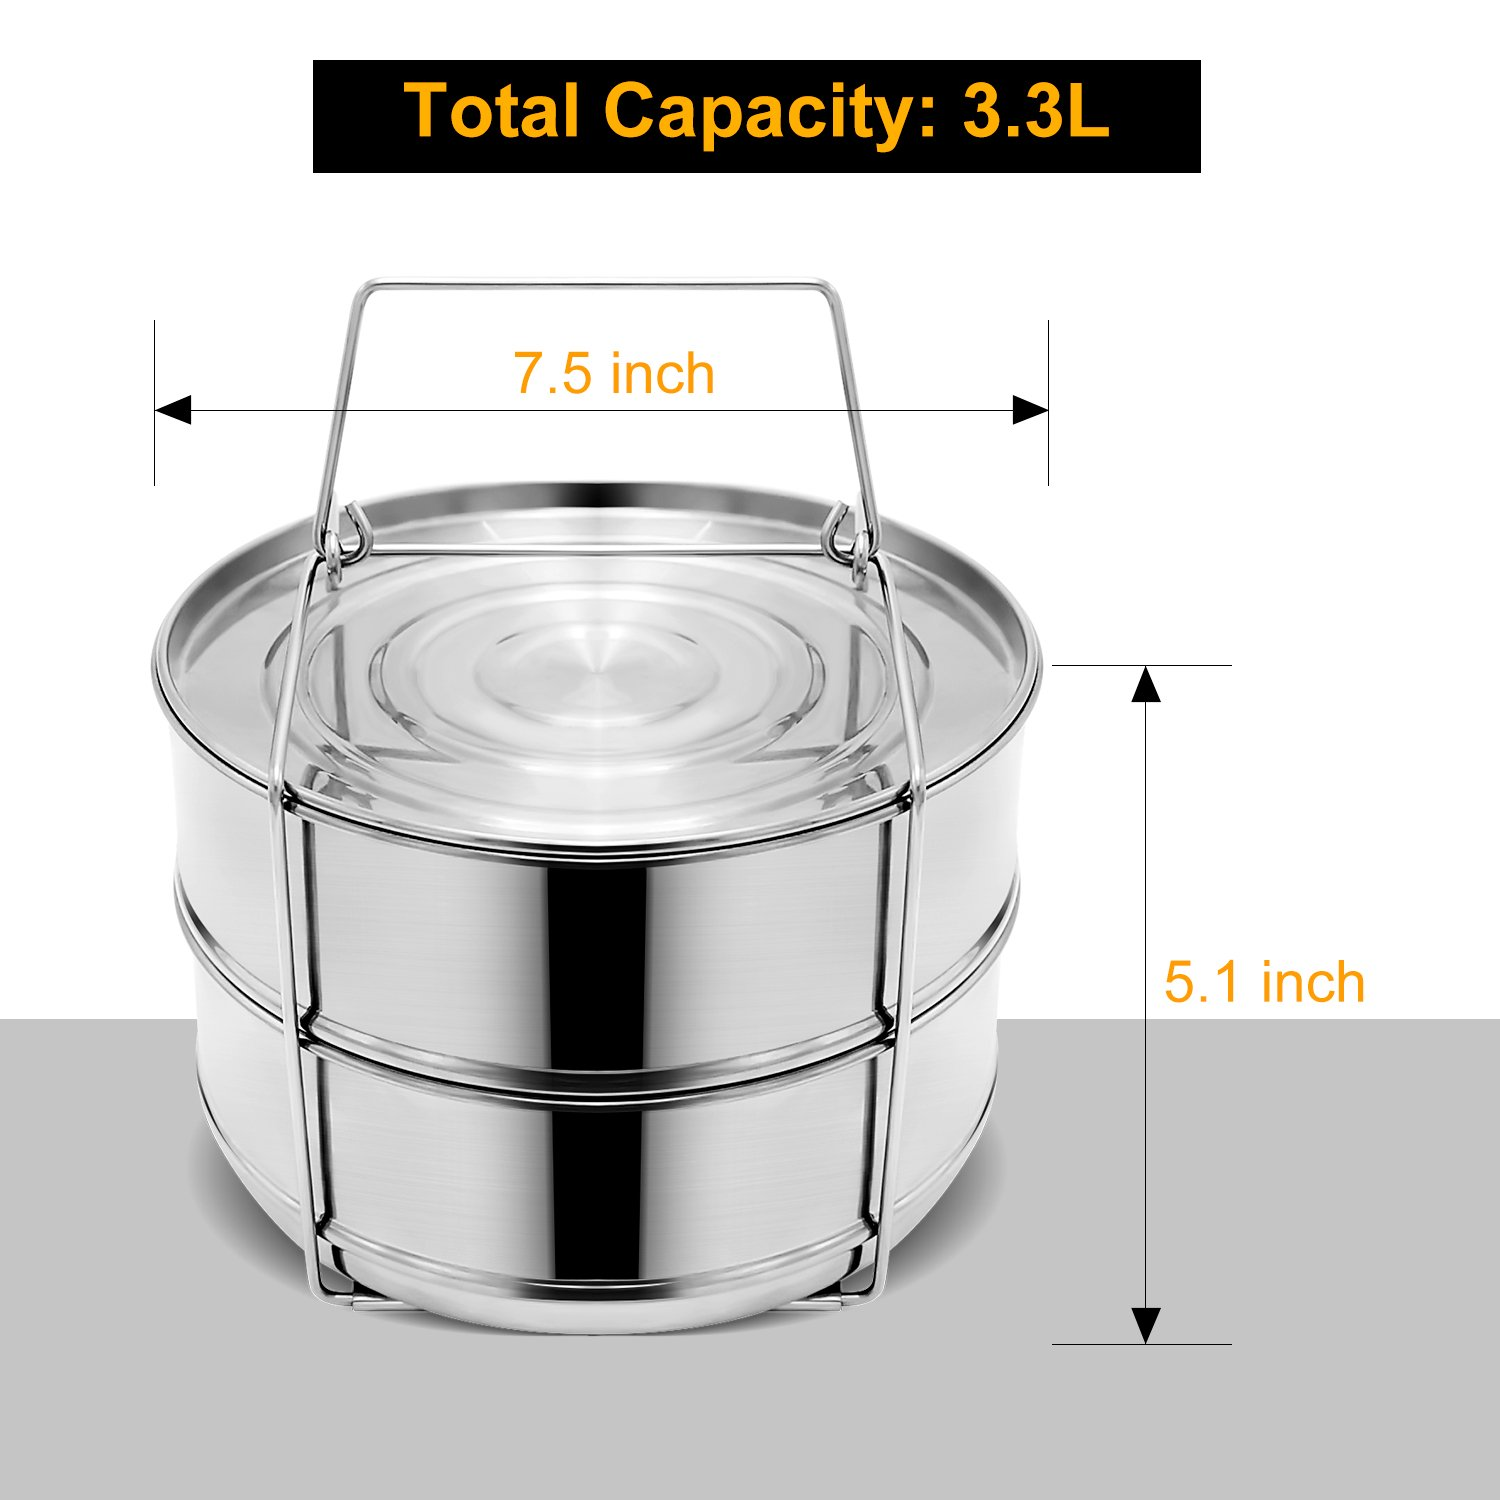 Stackable Steamer Insert Pans, Stainless Steel Insert Steamer for 6/8 Quart Instant Pot Pressure Cooker Baking Lasagna Pans Pot in Pot Accessories Cook 2 foods at Once by youermei (Image #7)